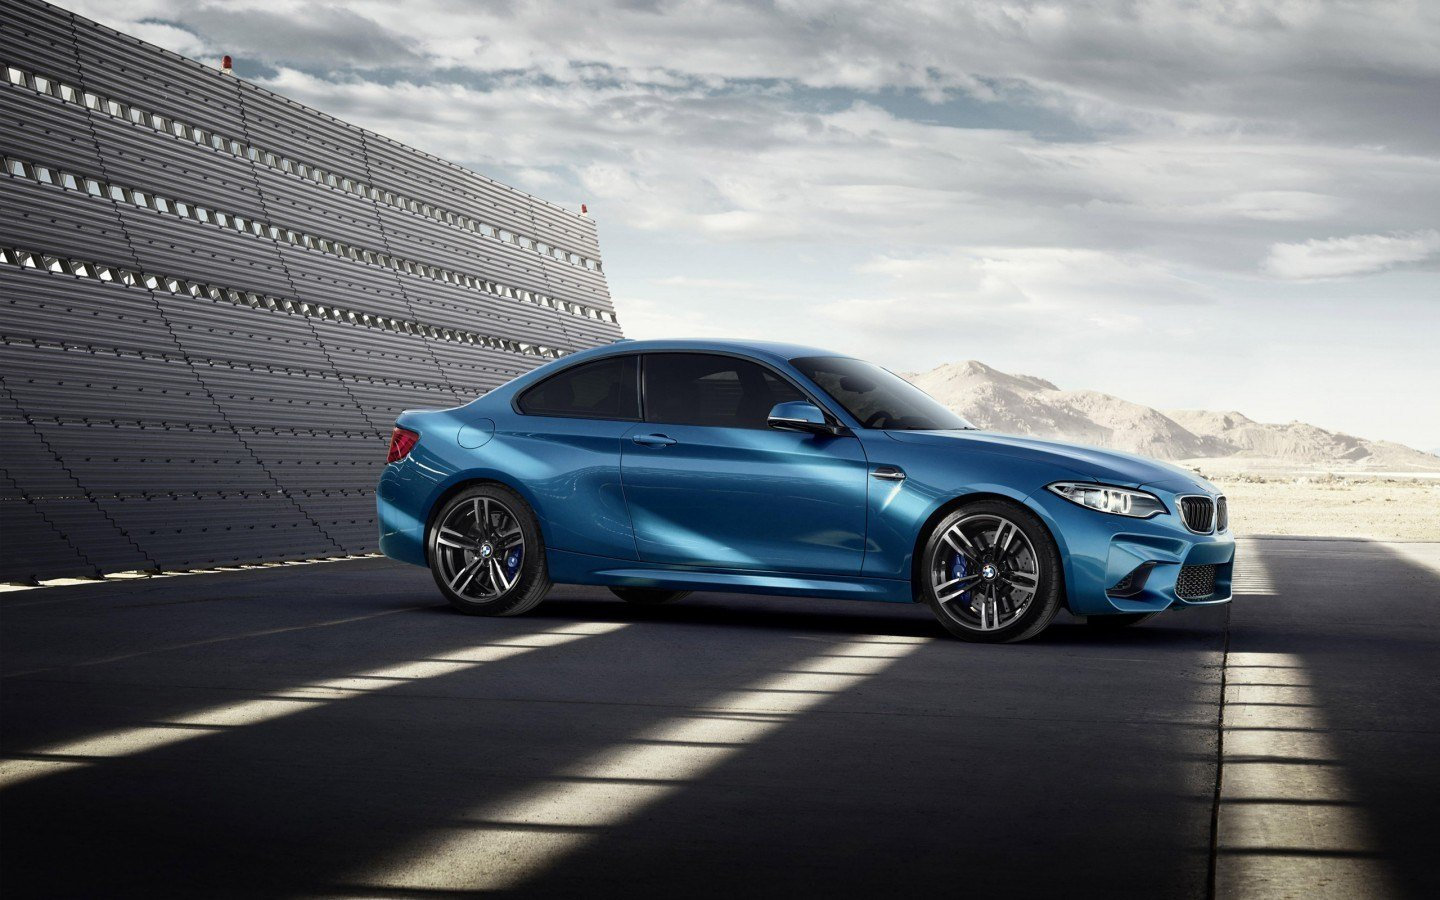 Latest 2016 Bmw M2 Wallpaper Hd Car Wallpapers Id 6449 Free Download